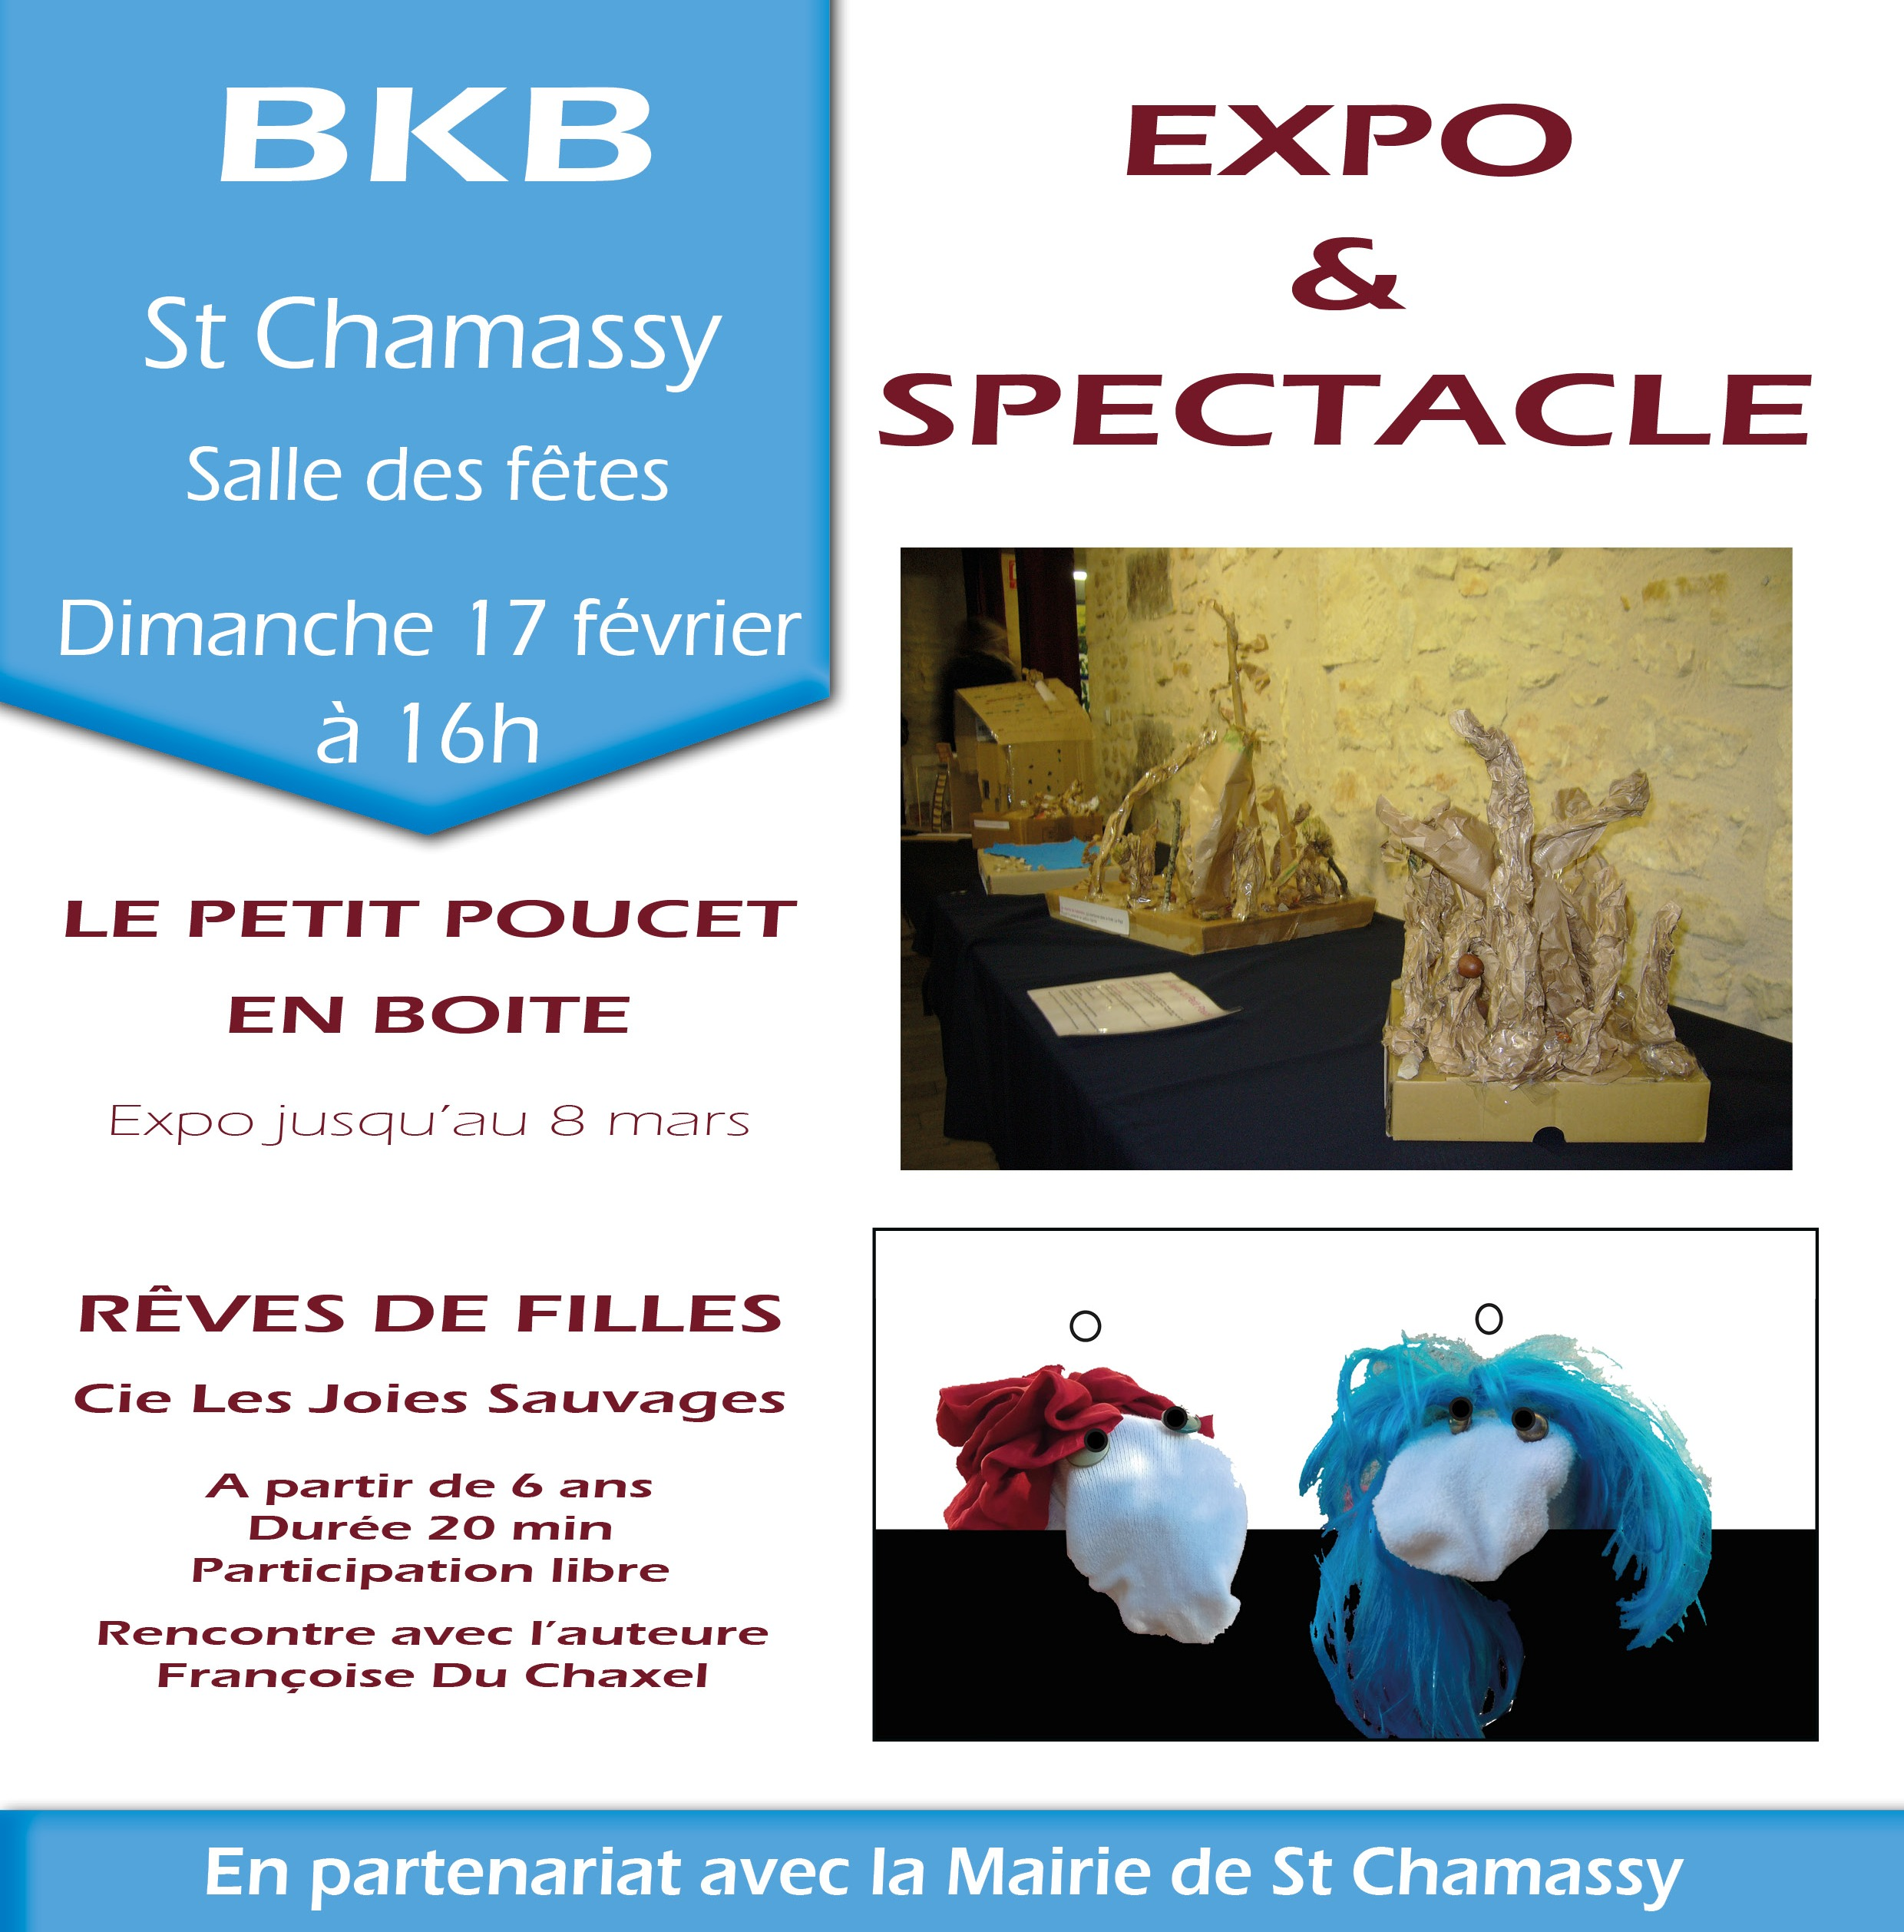 Expo St Chamassy site web